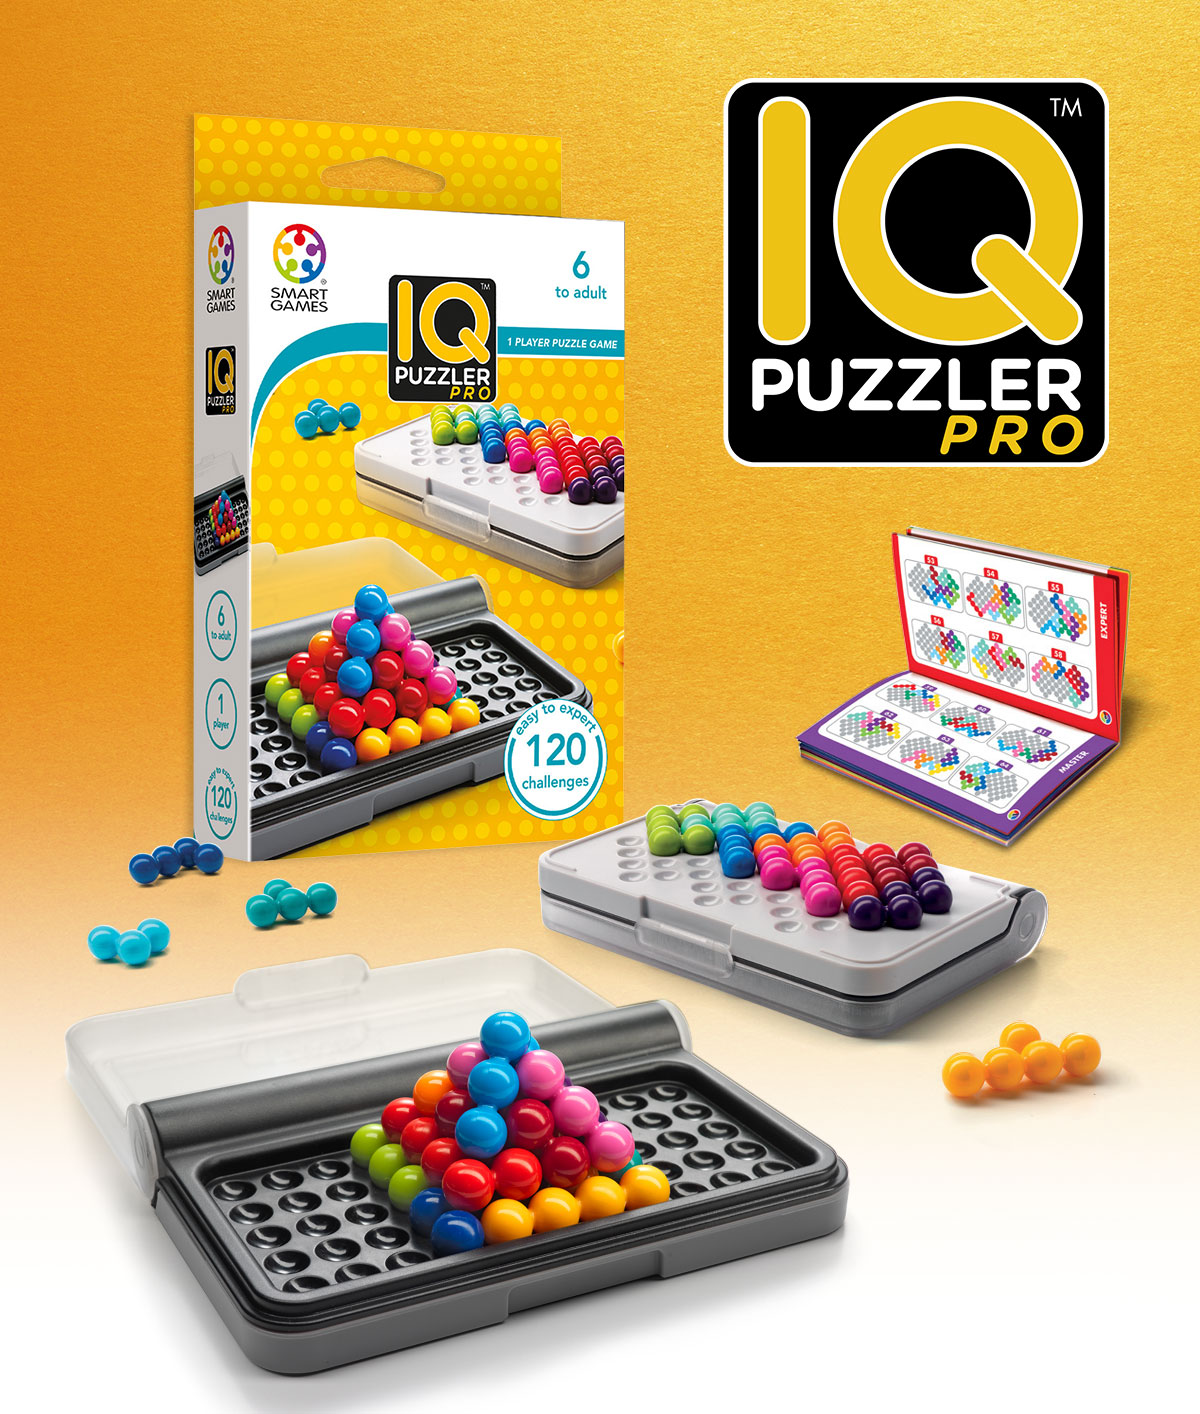 Smart games iq puzzler booklet pdf